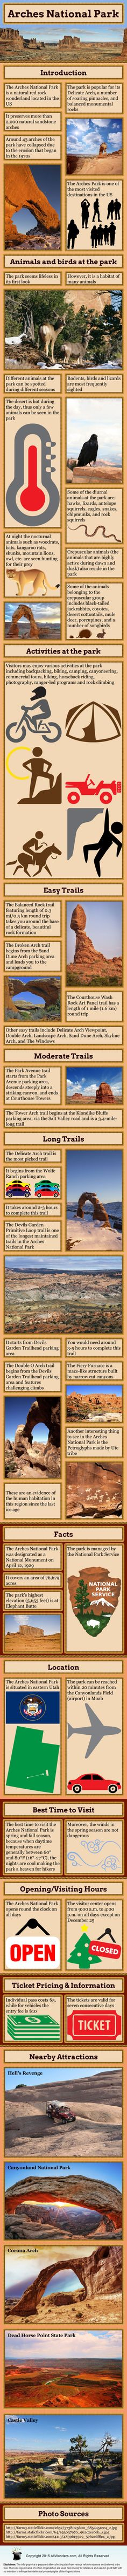 Arches National Park Infographic